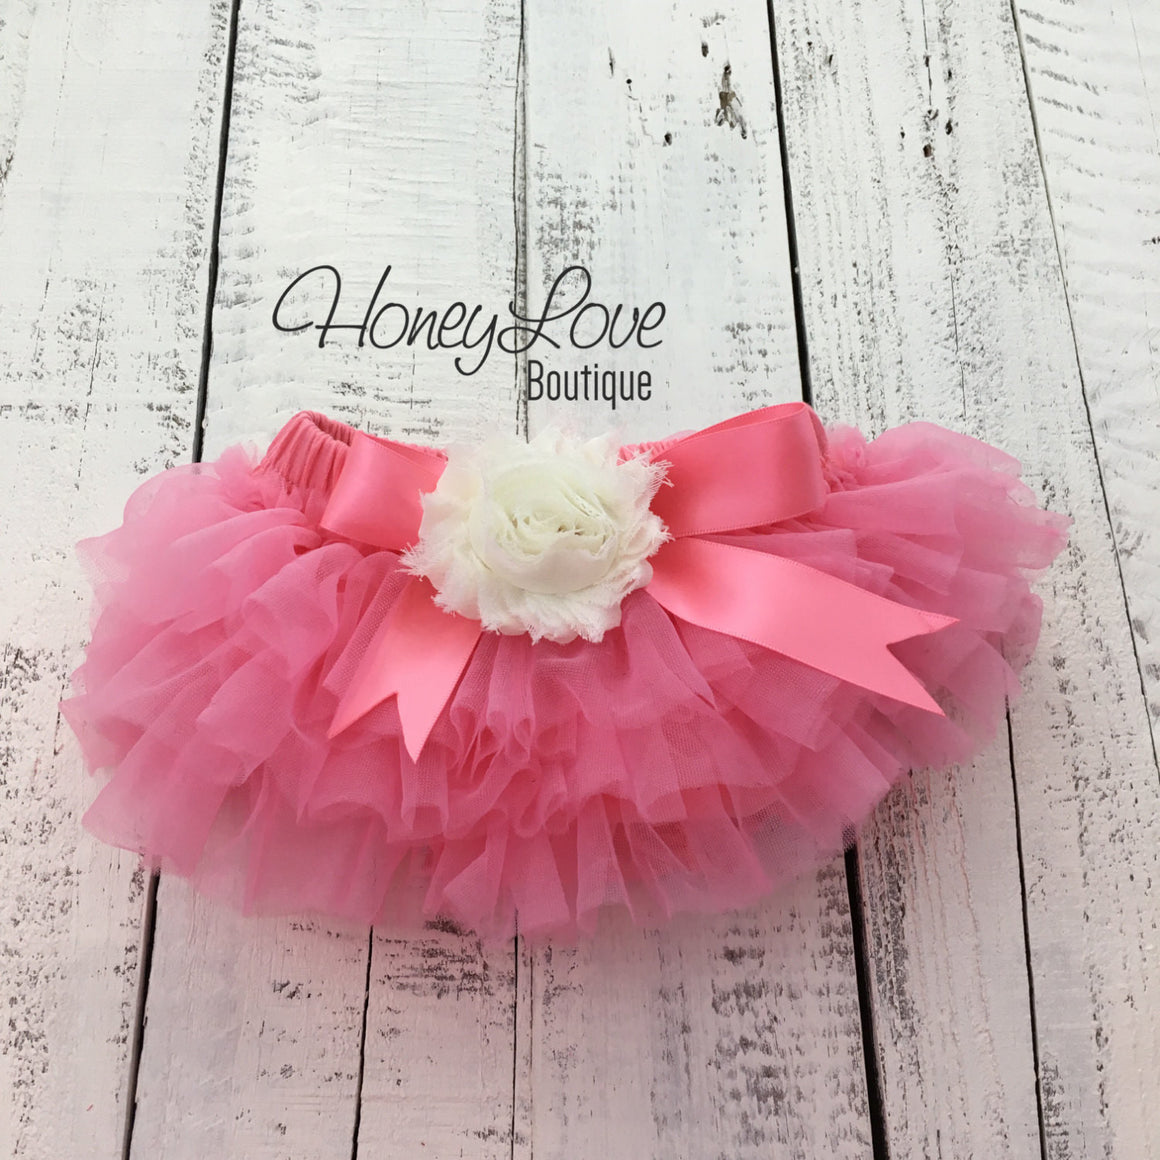 Coral Pink/Ivory Embellished tutu skirt bloomers - HoneyLoveBoutique